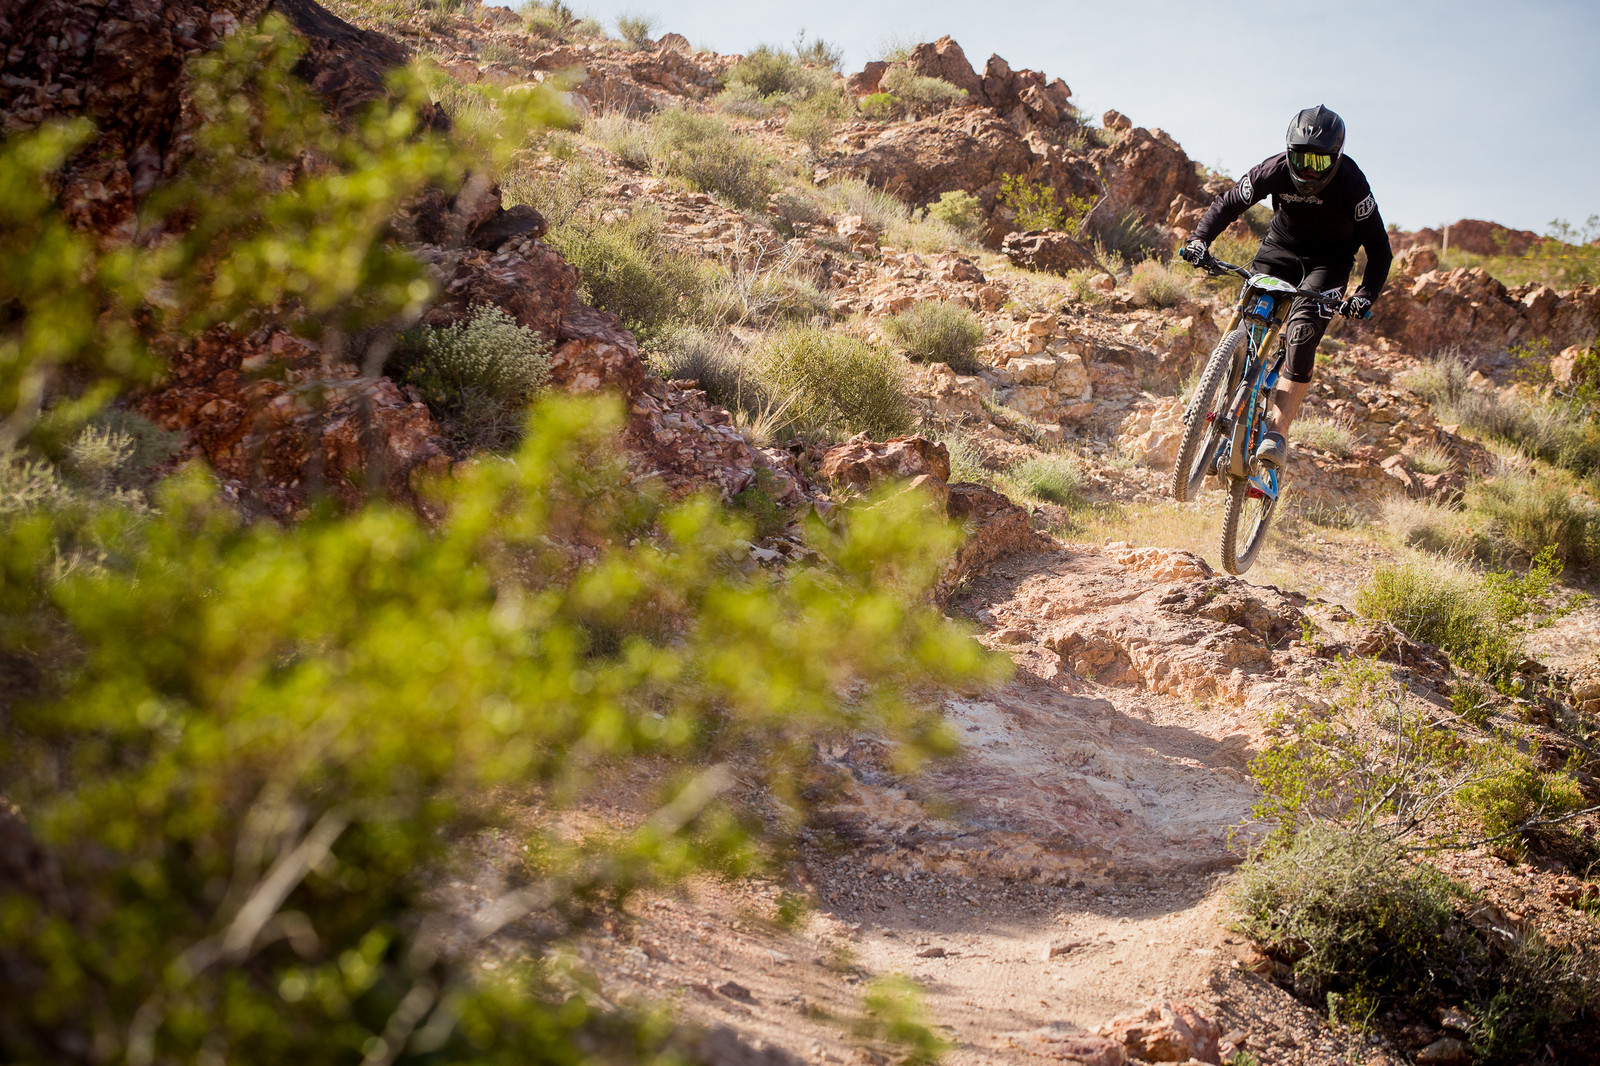 2017 Reaper Madness DH at Bootleg Canyon-18 - 2017 Reaper Madness DH Photos - Mountain Biking Pictures - Vital MTB